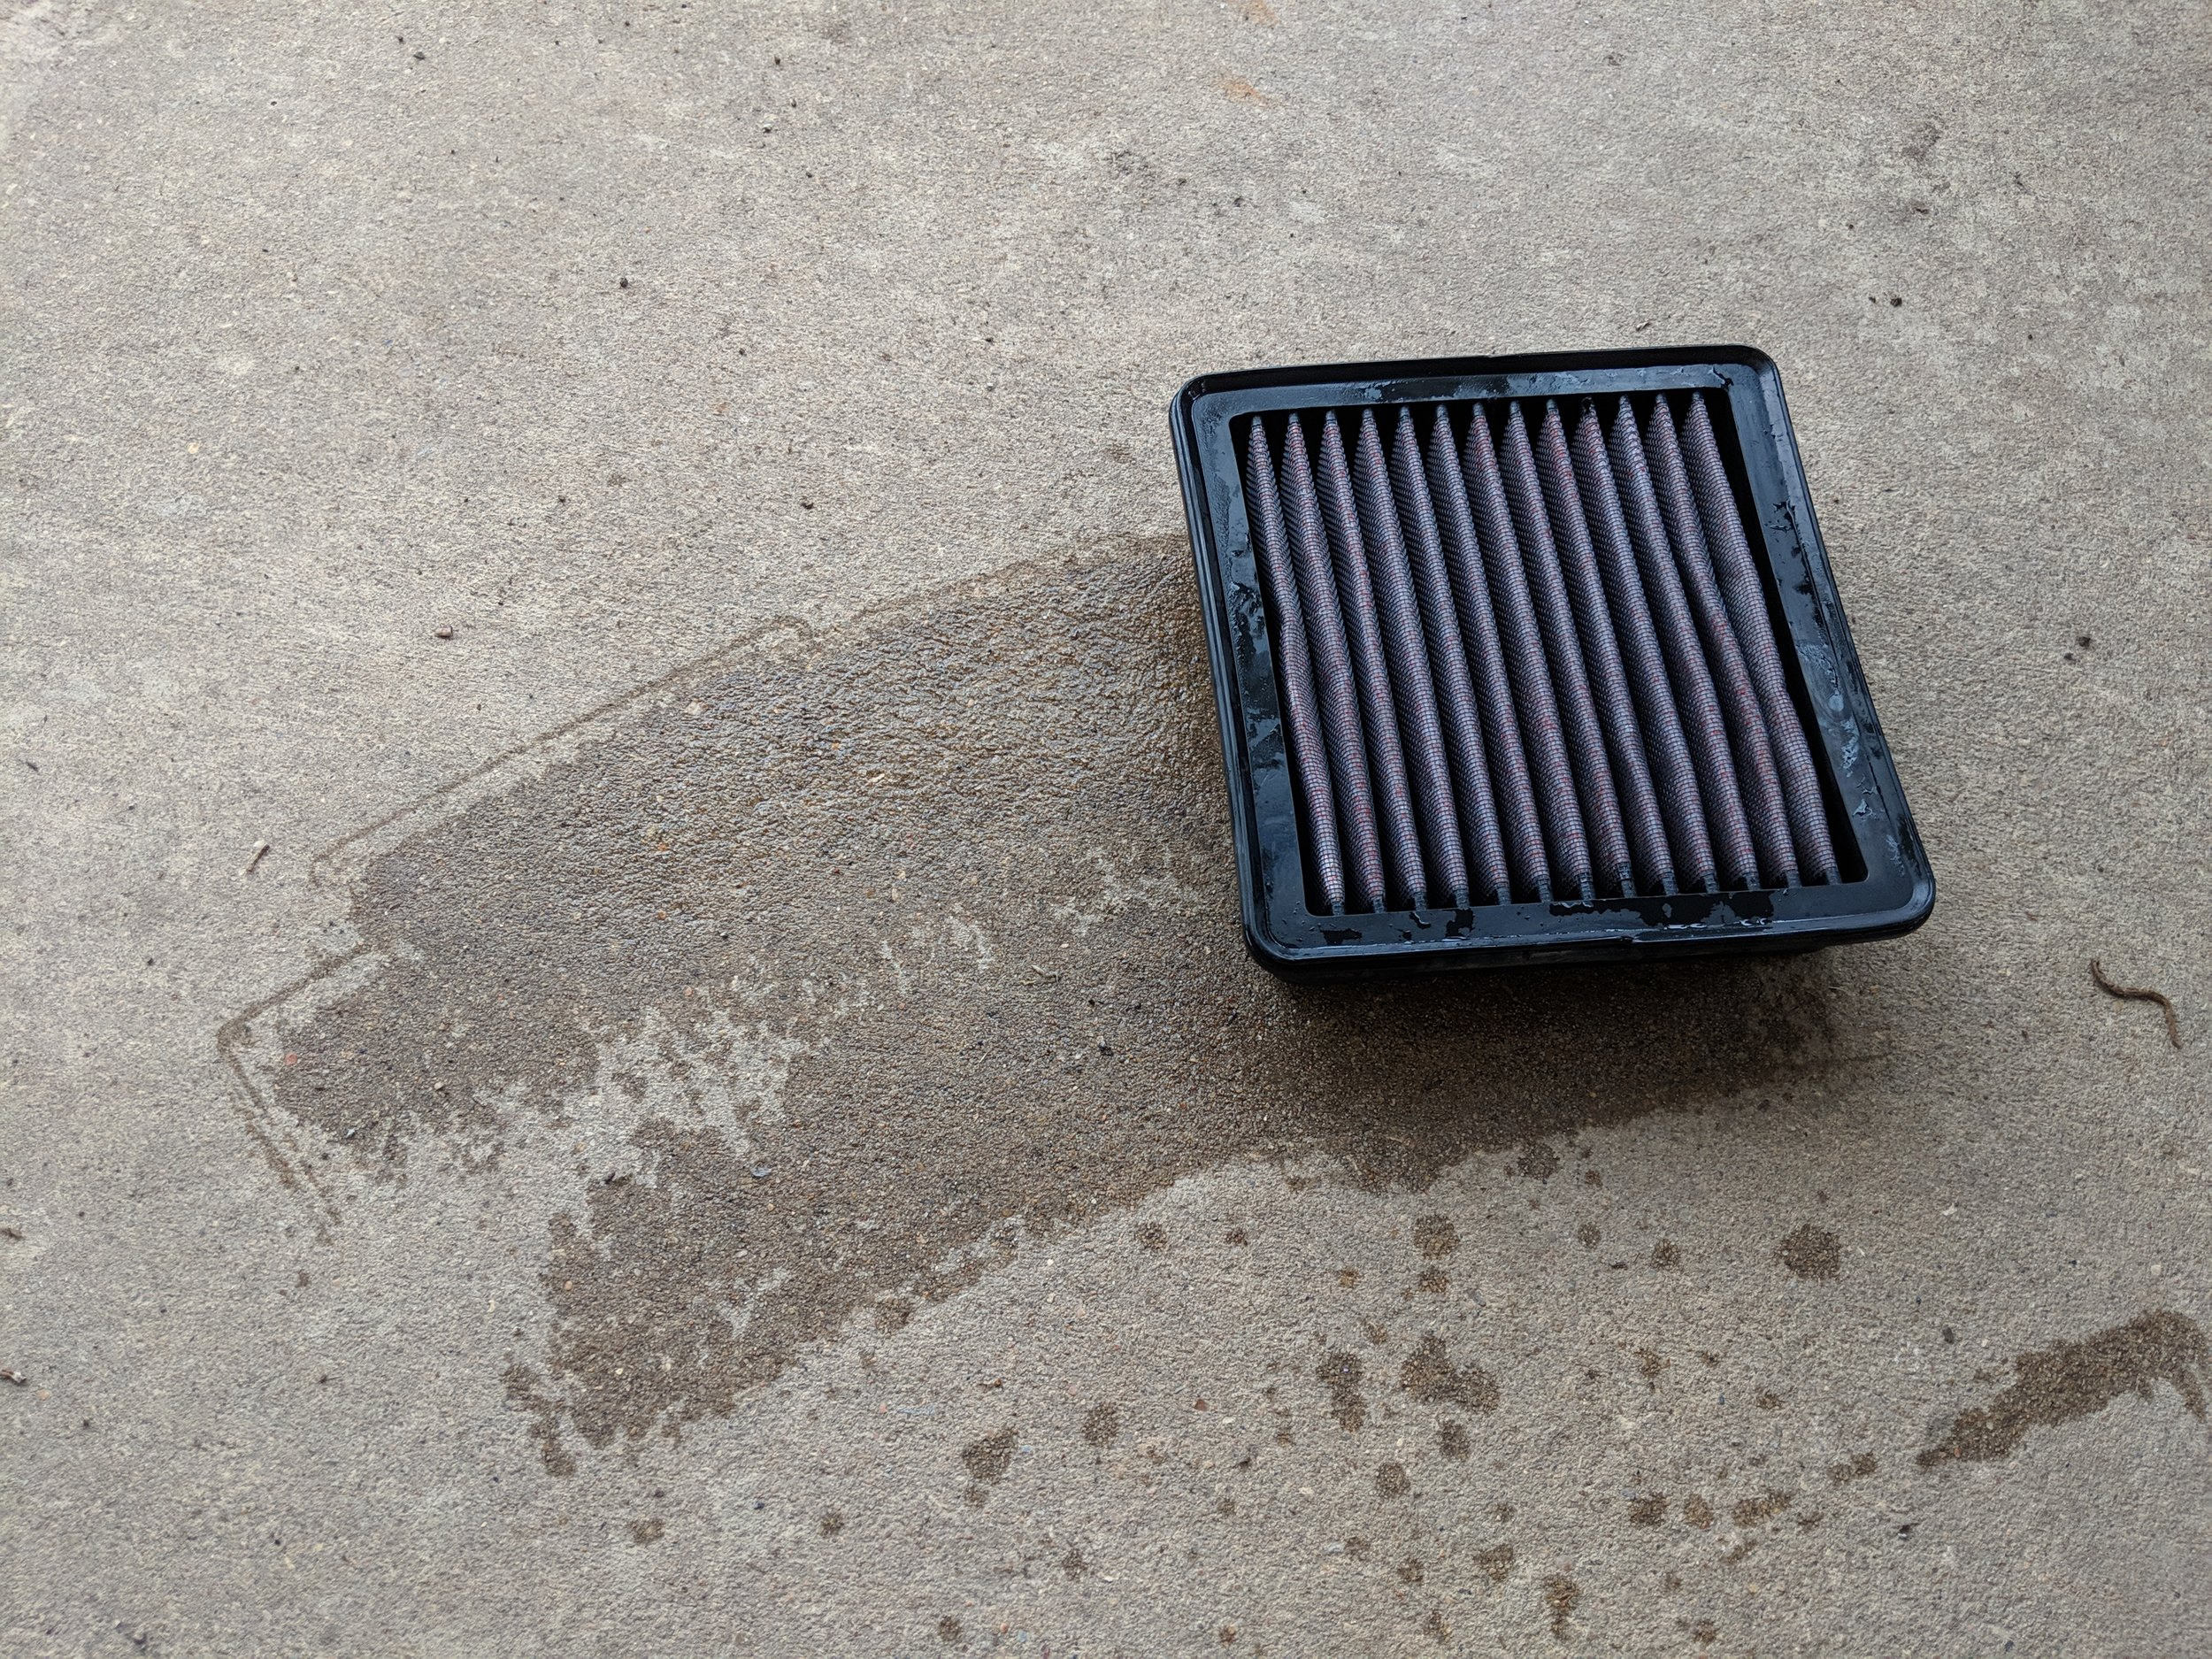 Slapping the filter onto the ground will help the quicken up the drying process. While knocking the loosened debris out.